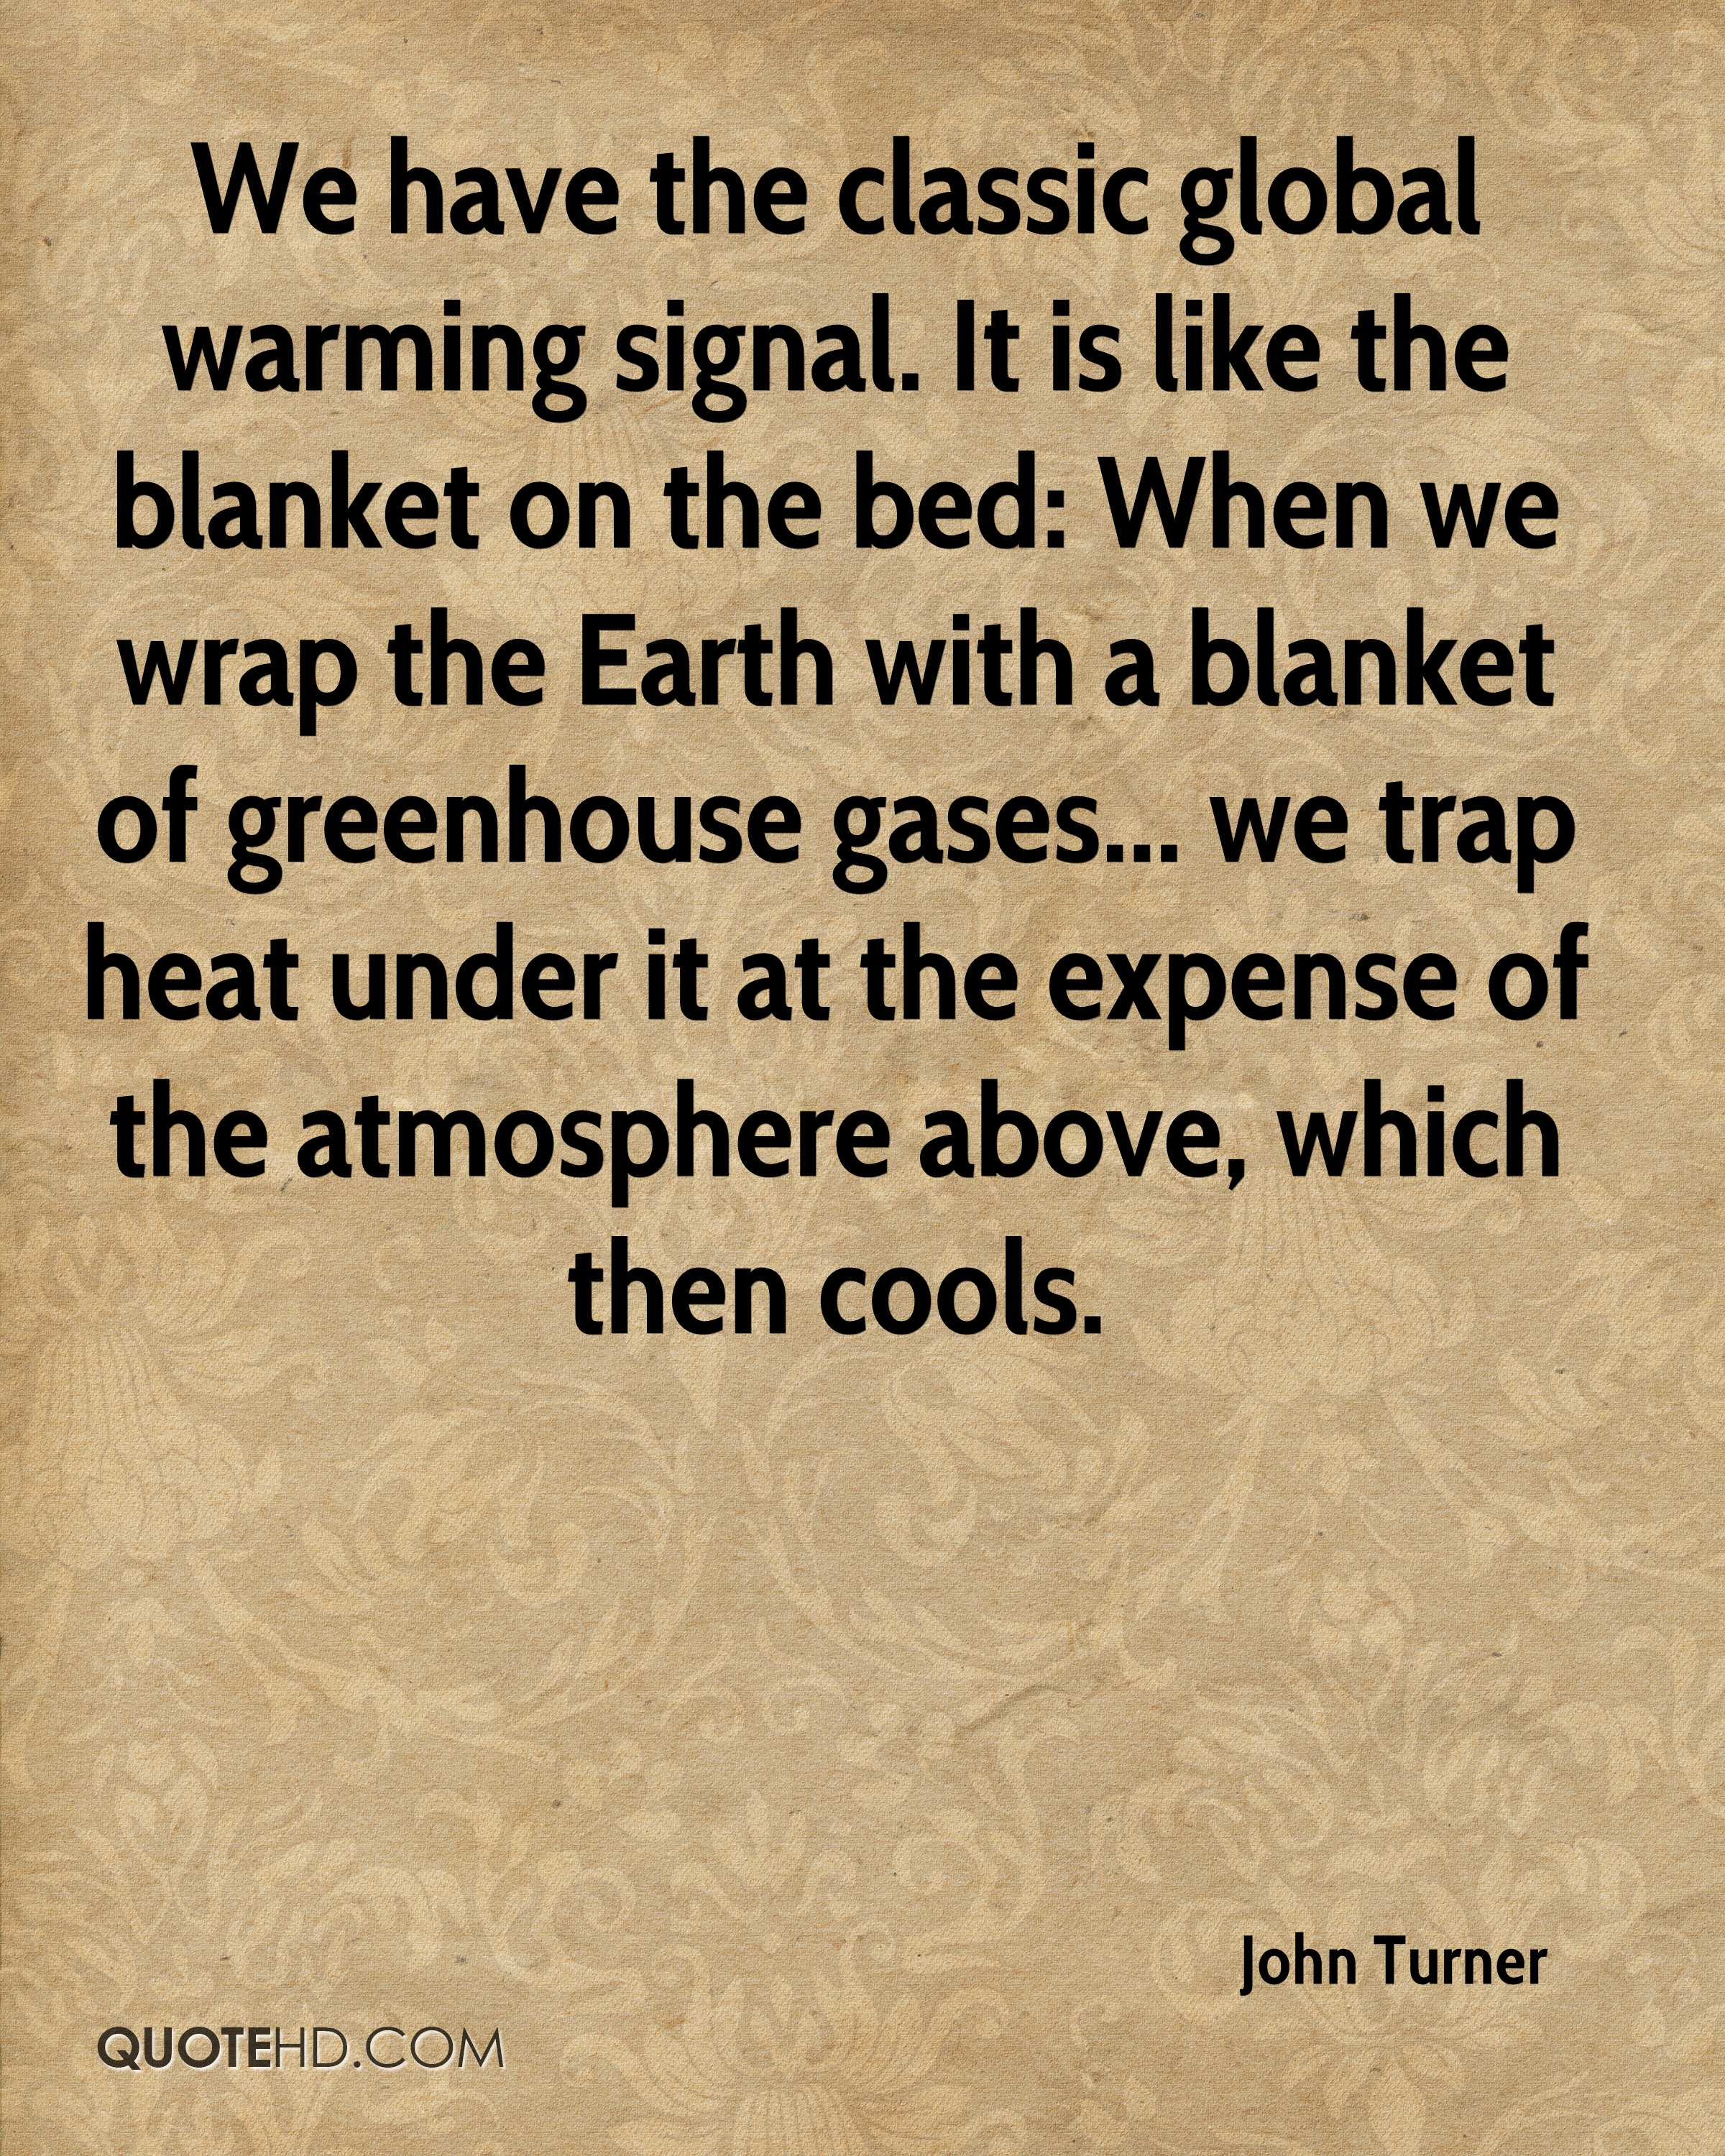 We have the classic global warming signal. It is like the blanket on the bed: When we wrap the Earth with a blanket of greenhouse gases... we trap heat under it at the expense of the atmosphere above, which then cools.